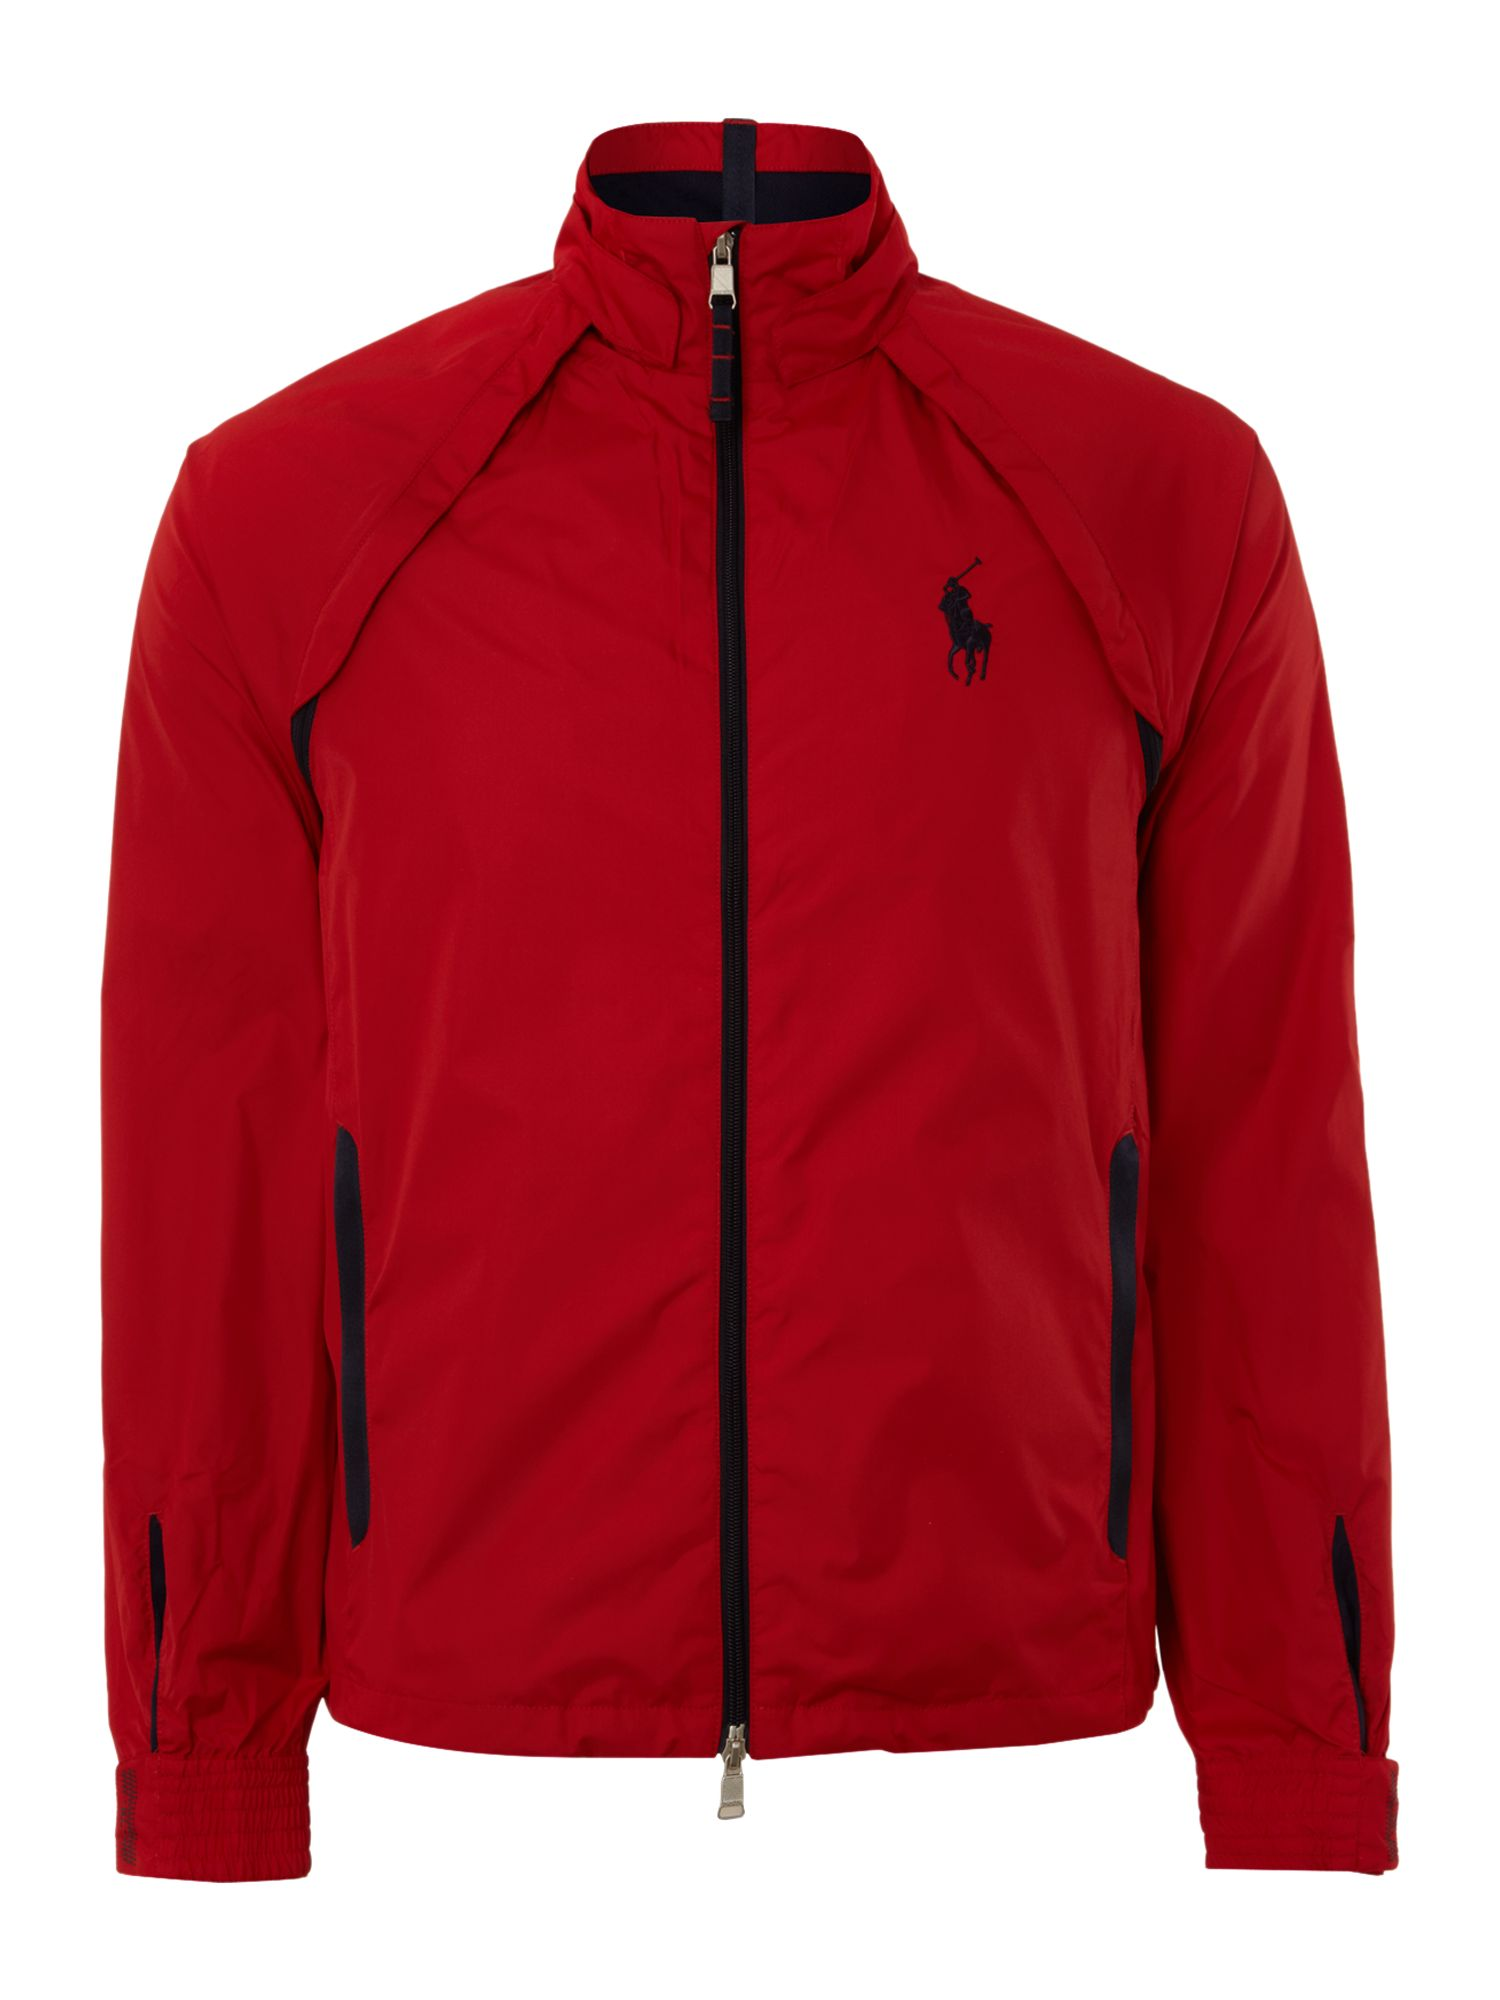 Ralph lauren golf Convertible Golf Windbreaker Jacket in Red for ...